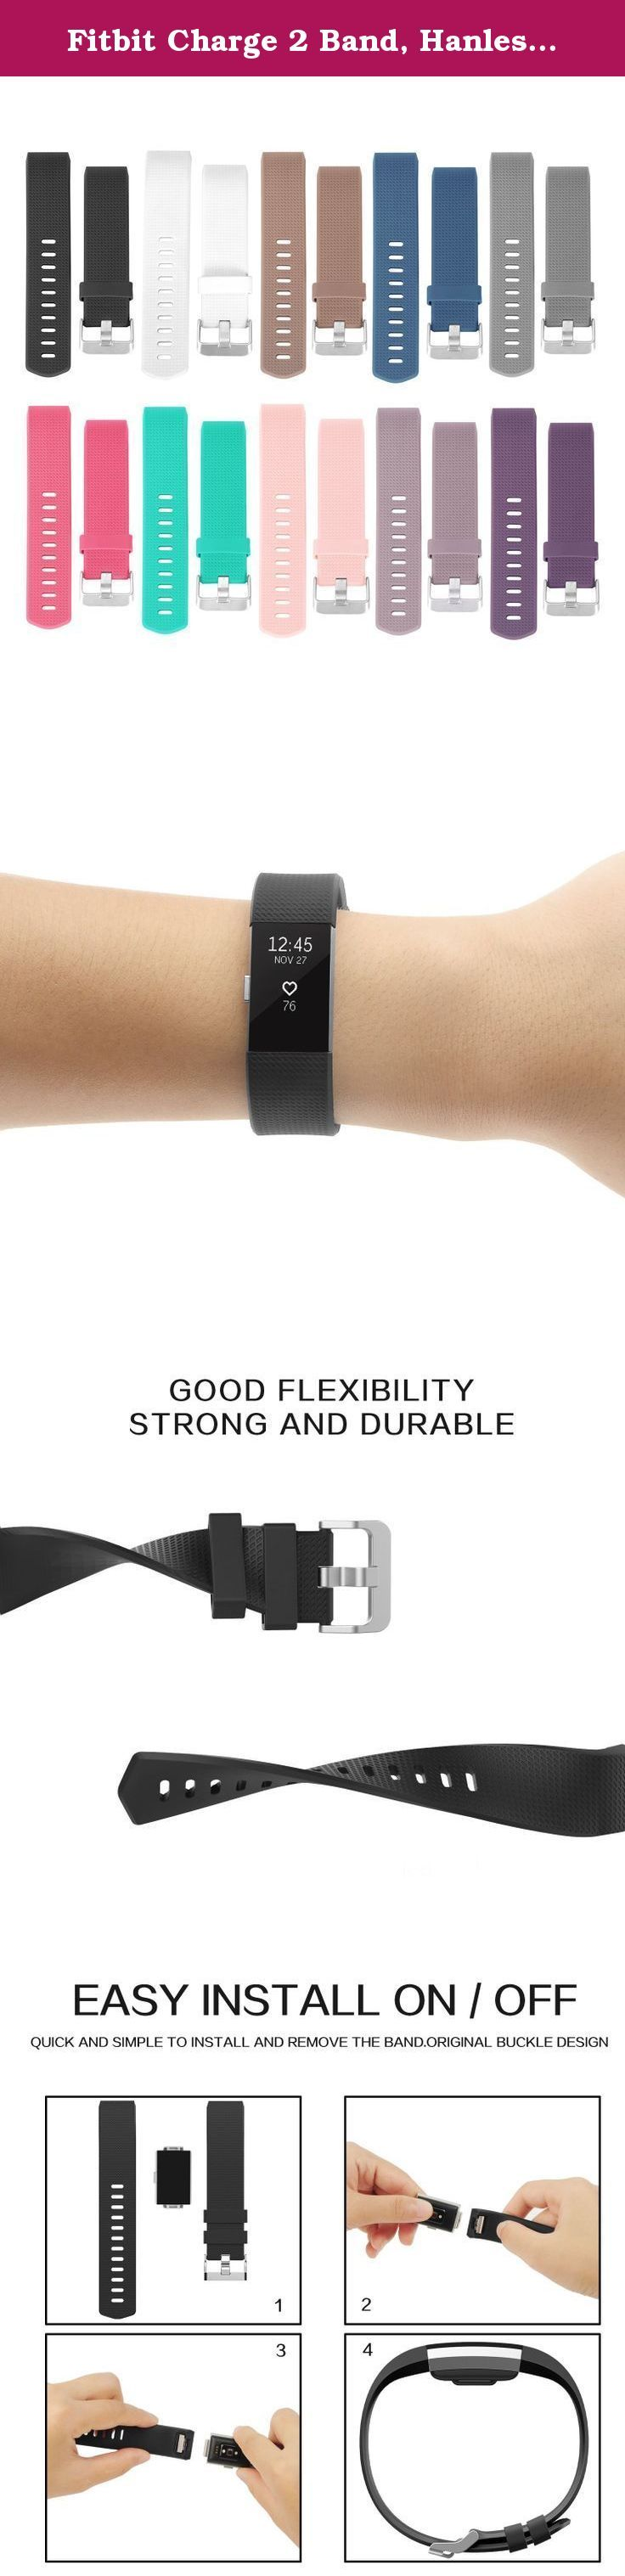 Fitbit Charge 2 Band, Hanlesi TPU Soft Silicone Adjustable Replacement Sport Strap Band for Fitbit Charge 2 Smartwatch Heart Rate Fitness Wristband (10 PCS, 5.1Inch-6.9Inch). 100% Brand New, High Quality Replacements for the Original Wristbands, great as a Spare, or even a gift . 2016 Fashion New Replacement soft TPU Band (No tracker) for Fitbit Charge 2 Heart Rate Fitness Trakcer Wireless Band Wristband Bracelet. If you have any questions with any product by Hanlesi, please feel free to...